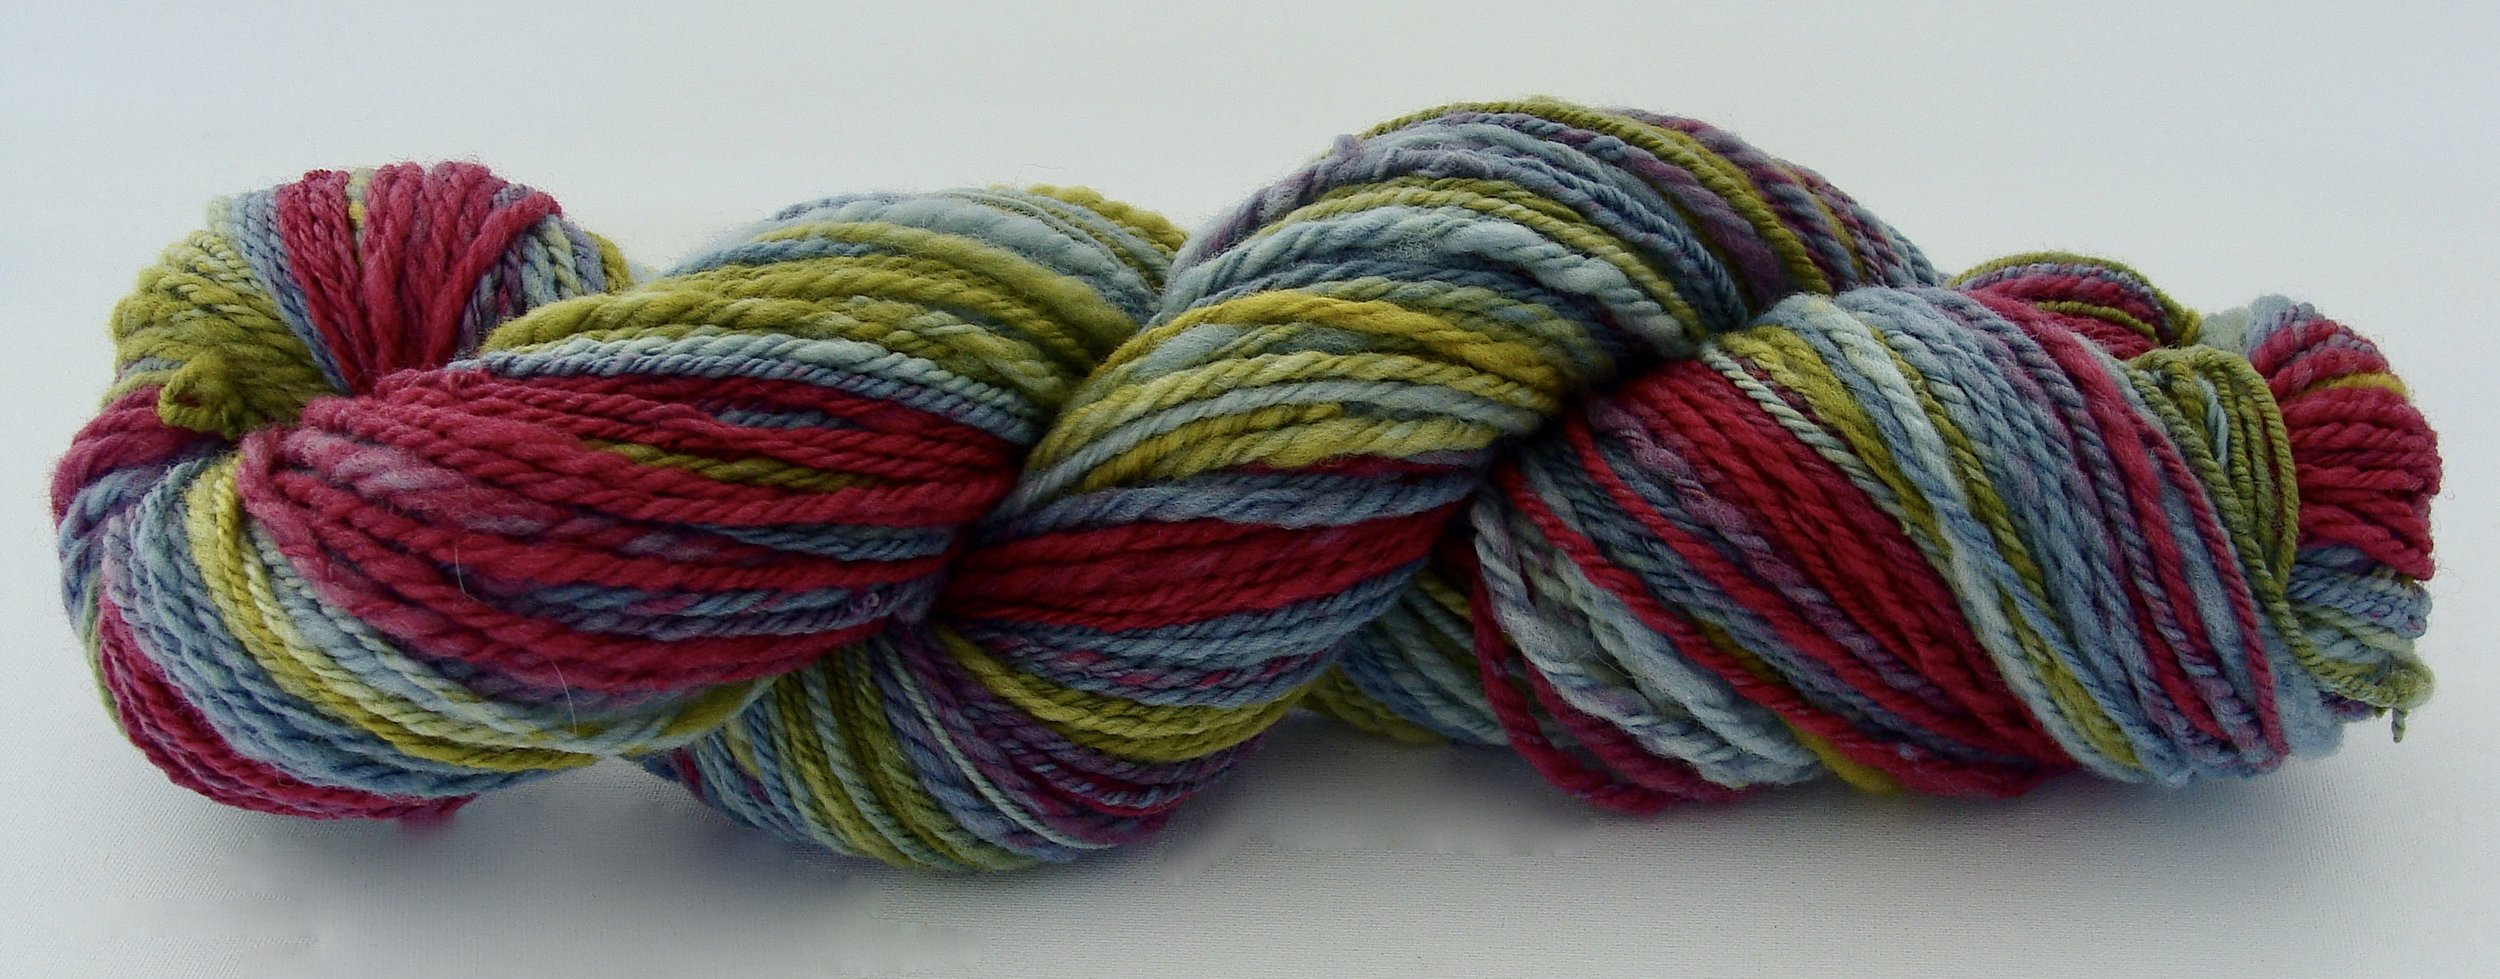 1 skein of Merino wool Navaho plied for a total of 153 yards.